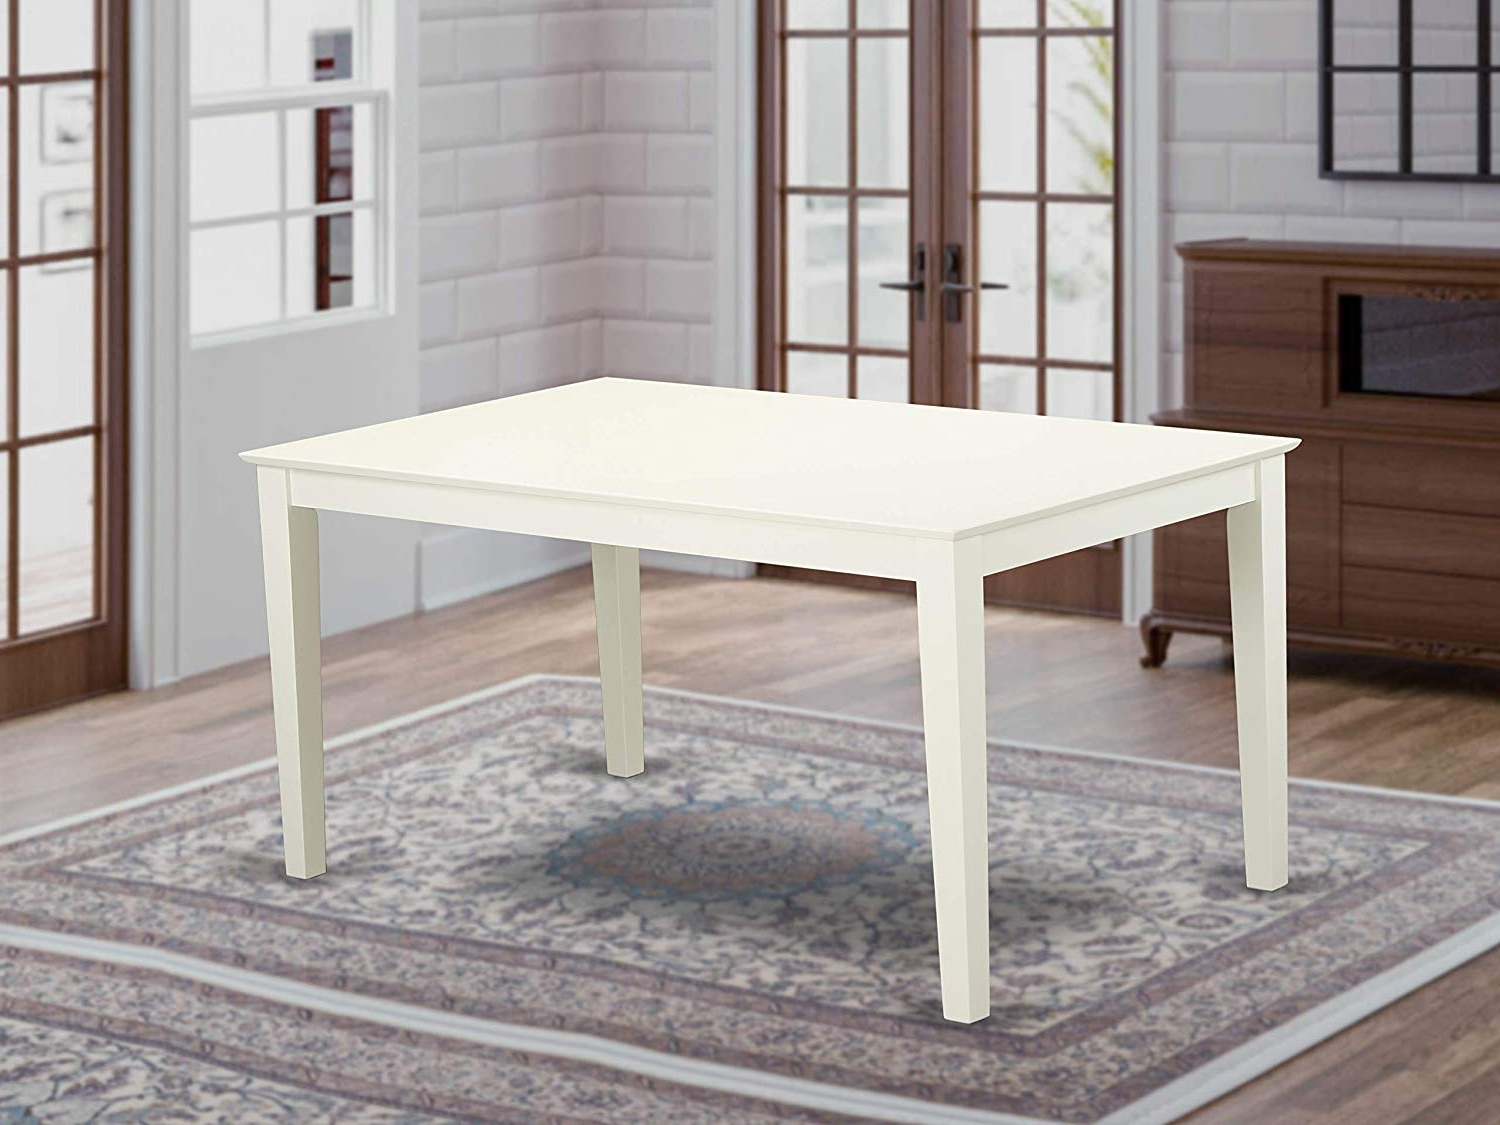 """Trendy Small Dining Tables With Rustic Pine Ash Brown Finish Within Capri Rectangular Dining Table 36""""x60"""" With Solid Wood Top In Linen White  Finish (Gallery 9 of 30)"""